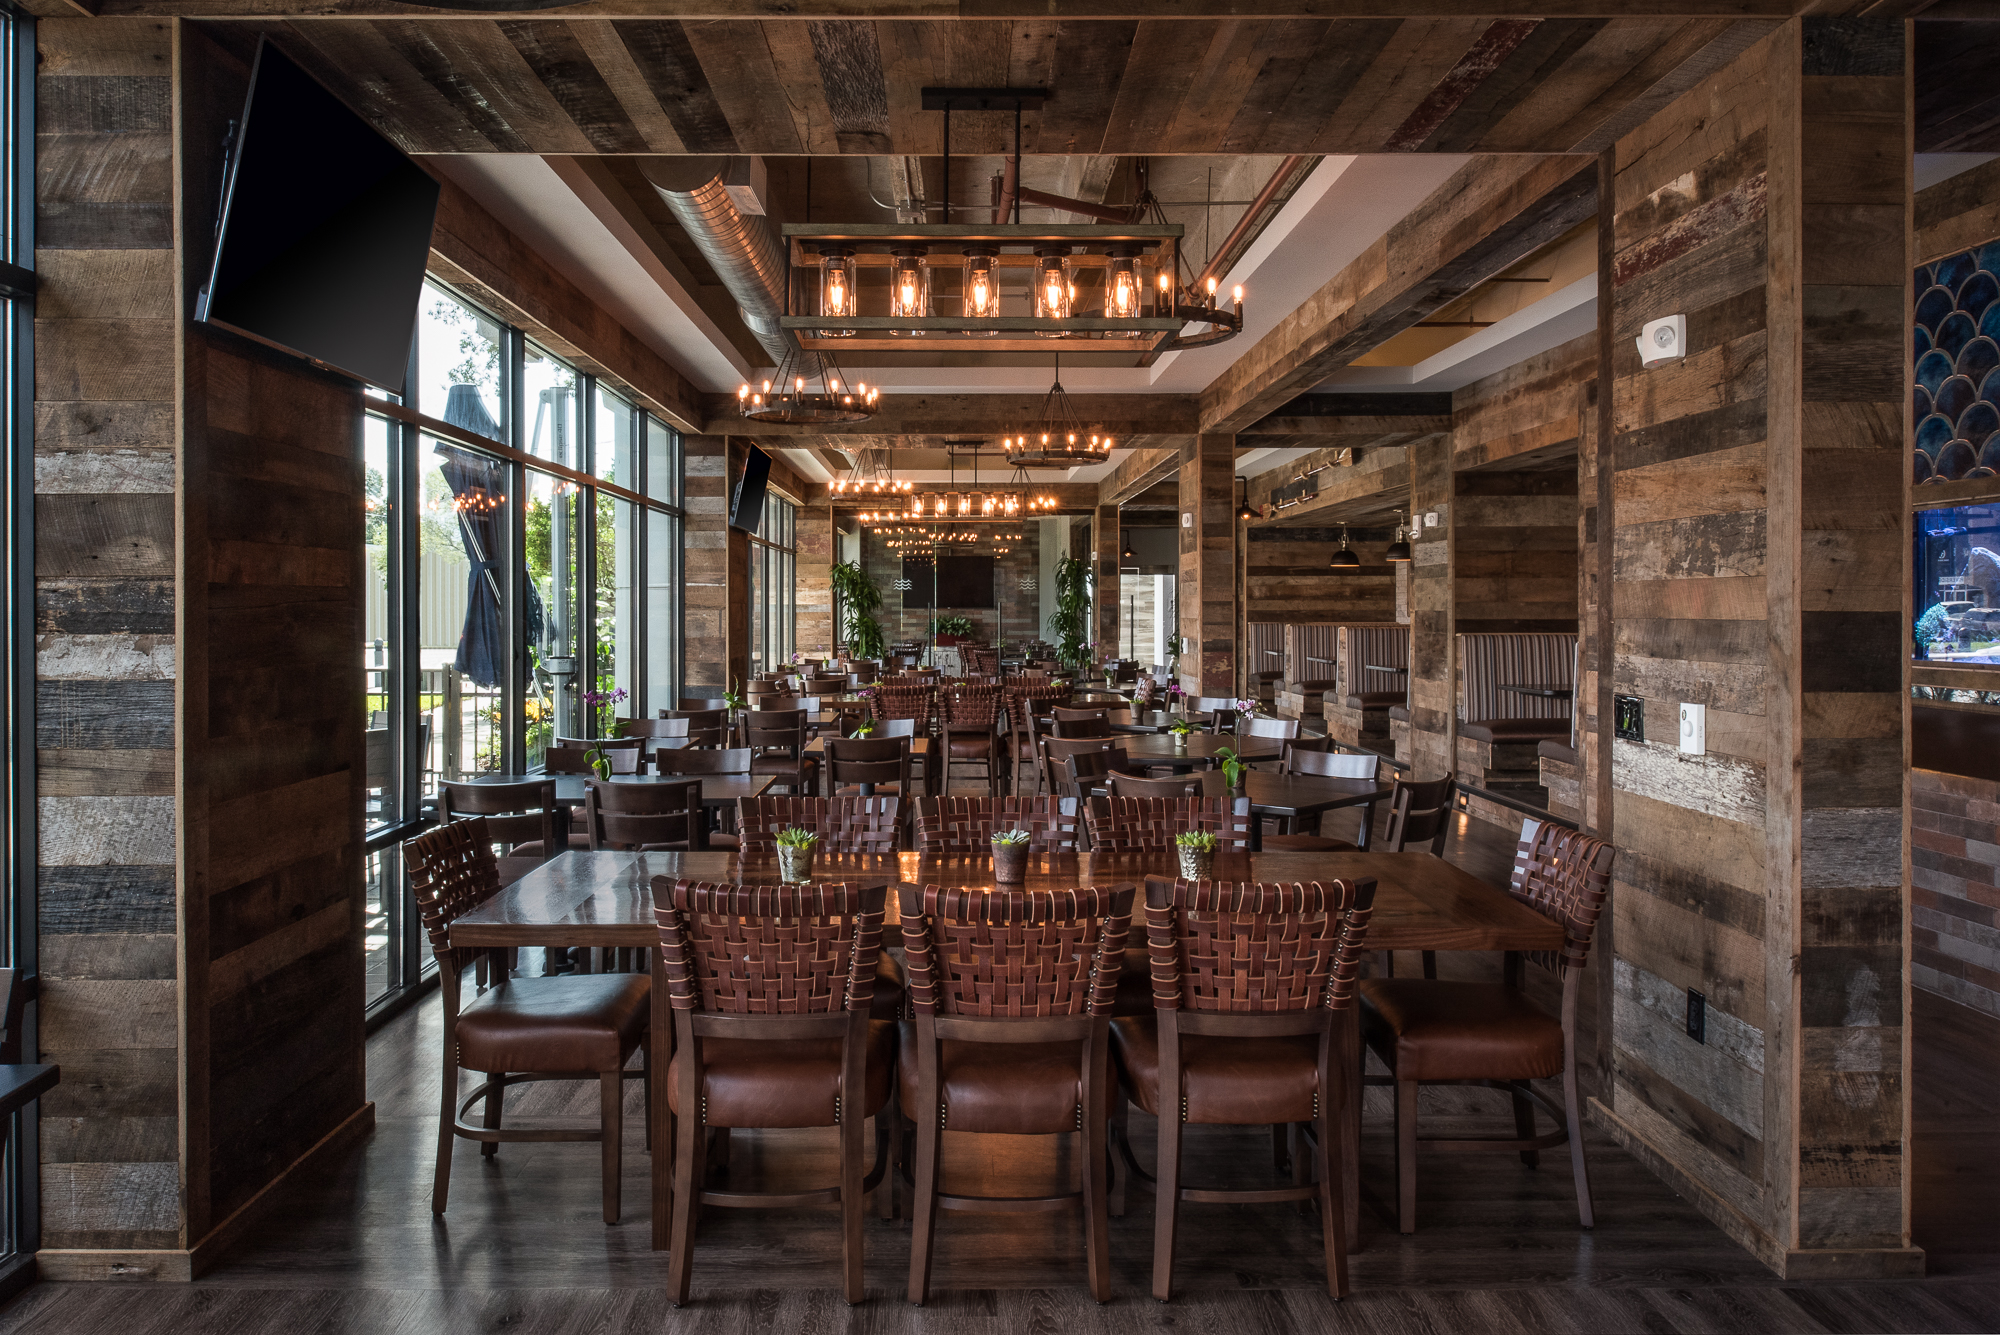 Micamy Design Studio_Interior Design_River and Post_Restaurant_Rooftop_Bar_Industrial_Rustic_Coastal_Riverside_Reclaimed Wood_Blog Style_Styling Accessories_Dining_Cocktails (9).jpg